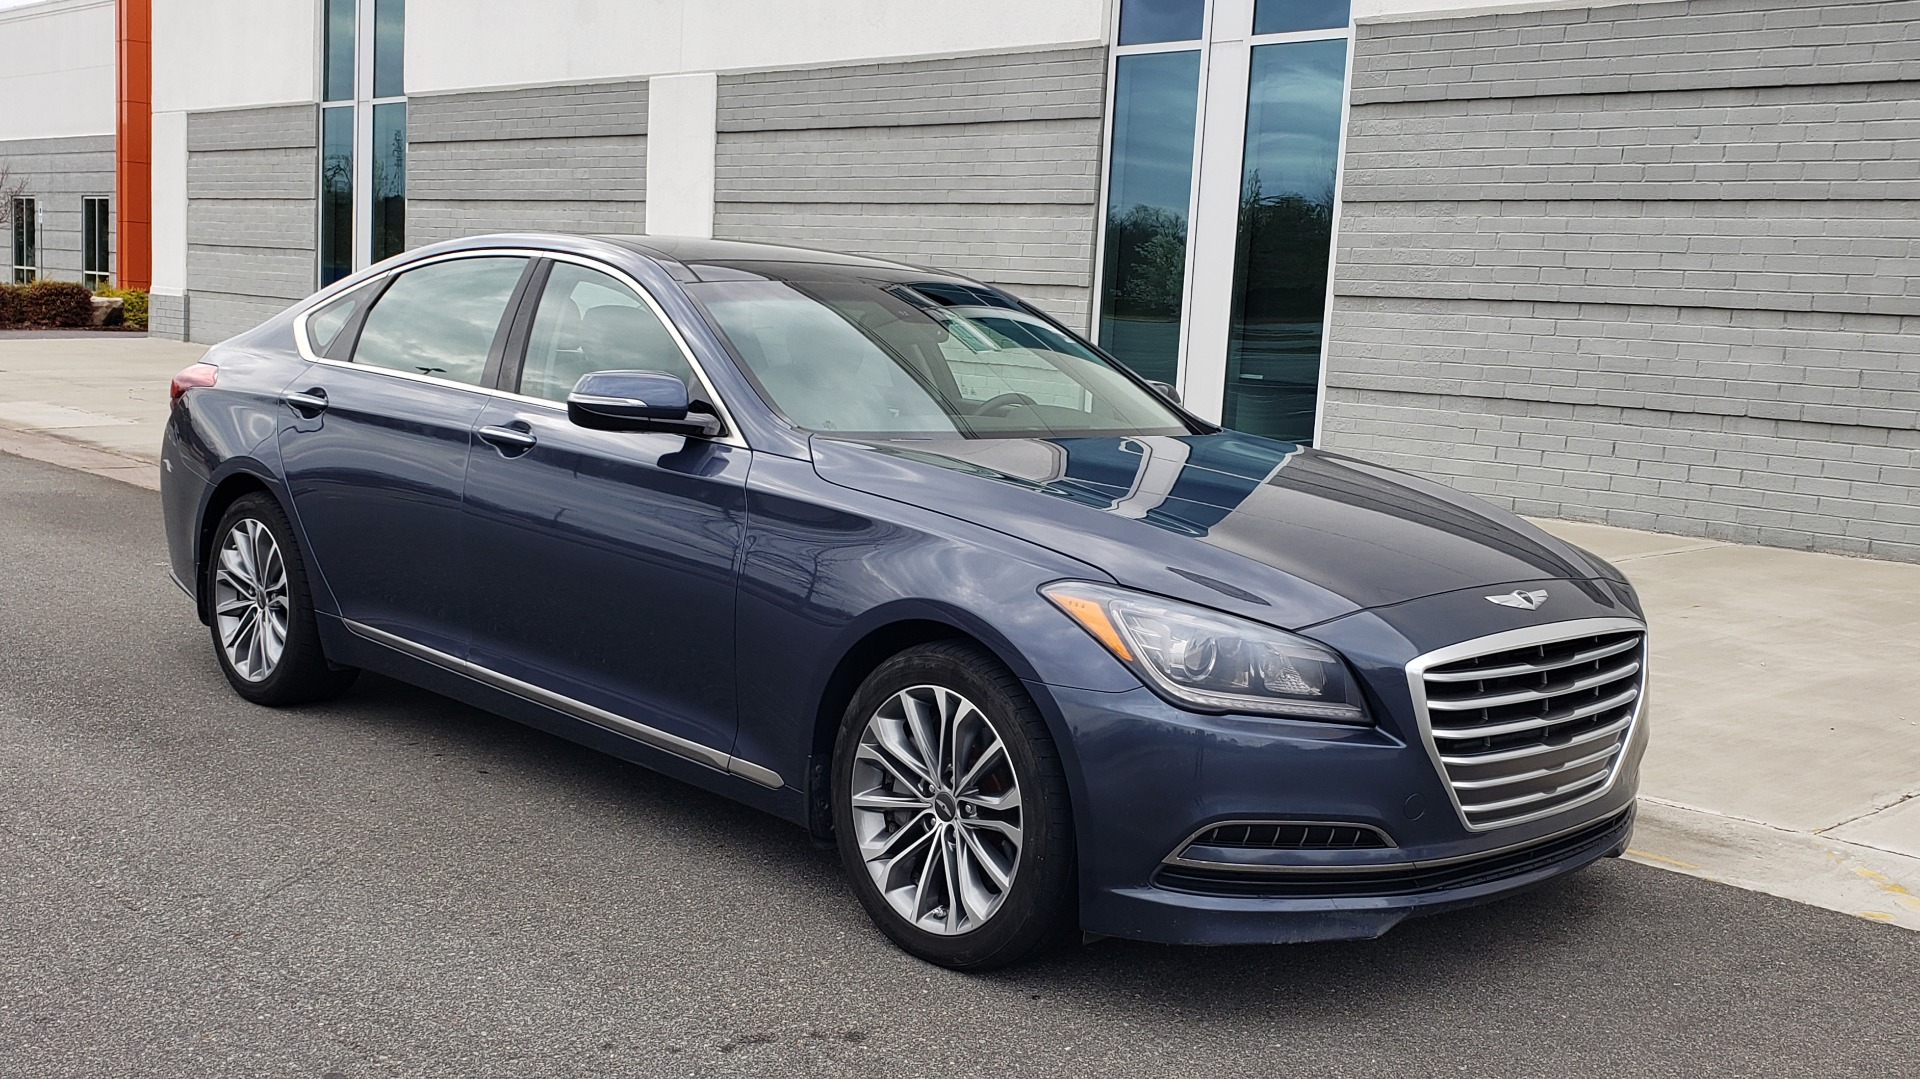 Used 2015 Hyundai GENESIS 3.8L V6 / RWD / SIGNATURE PKG / PANO-ROOF / REARVIEW for sale Sold at Formula Imports in Charlotte NC 28227 5